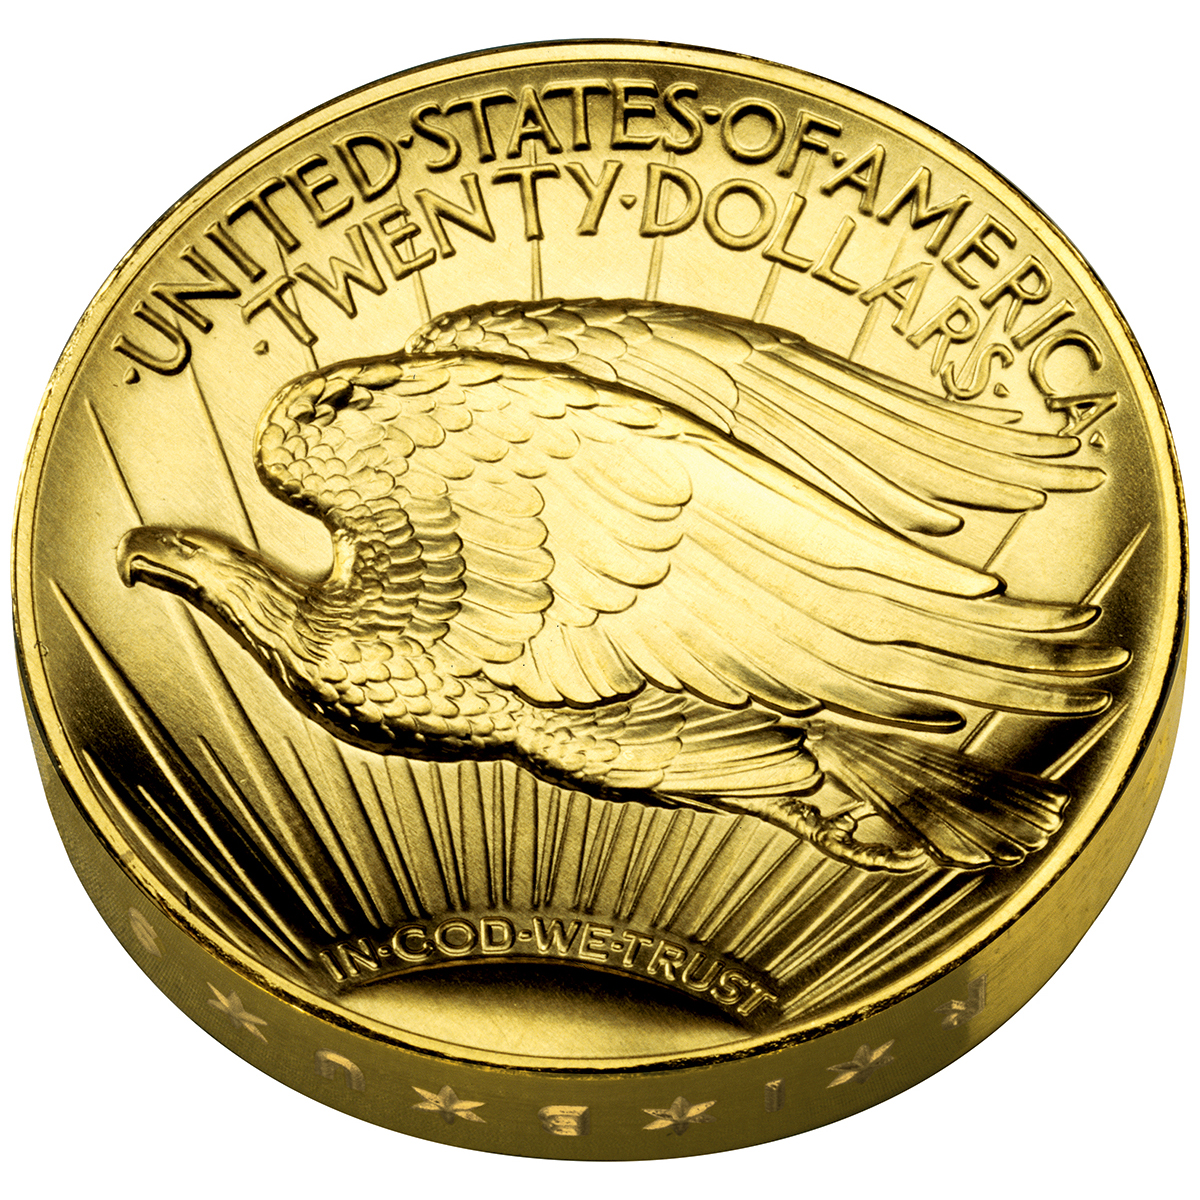 2009 Ultra High Relief Double Eagle Gold Coin Reverse